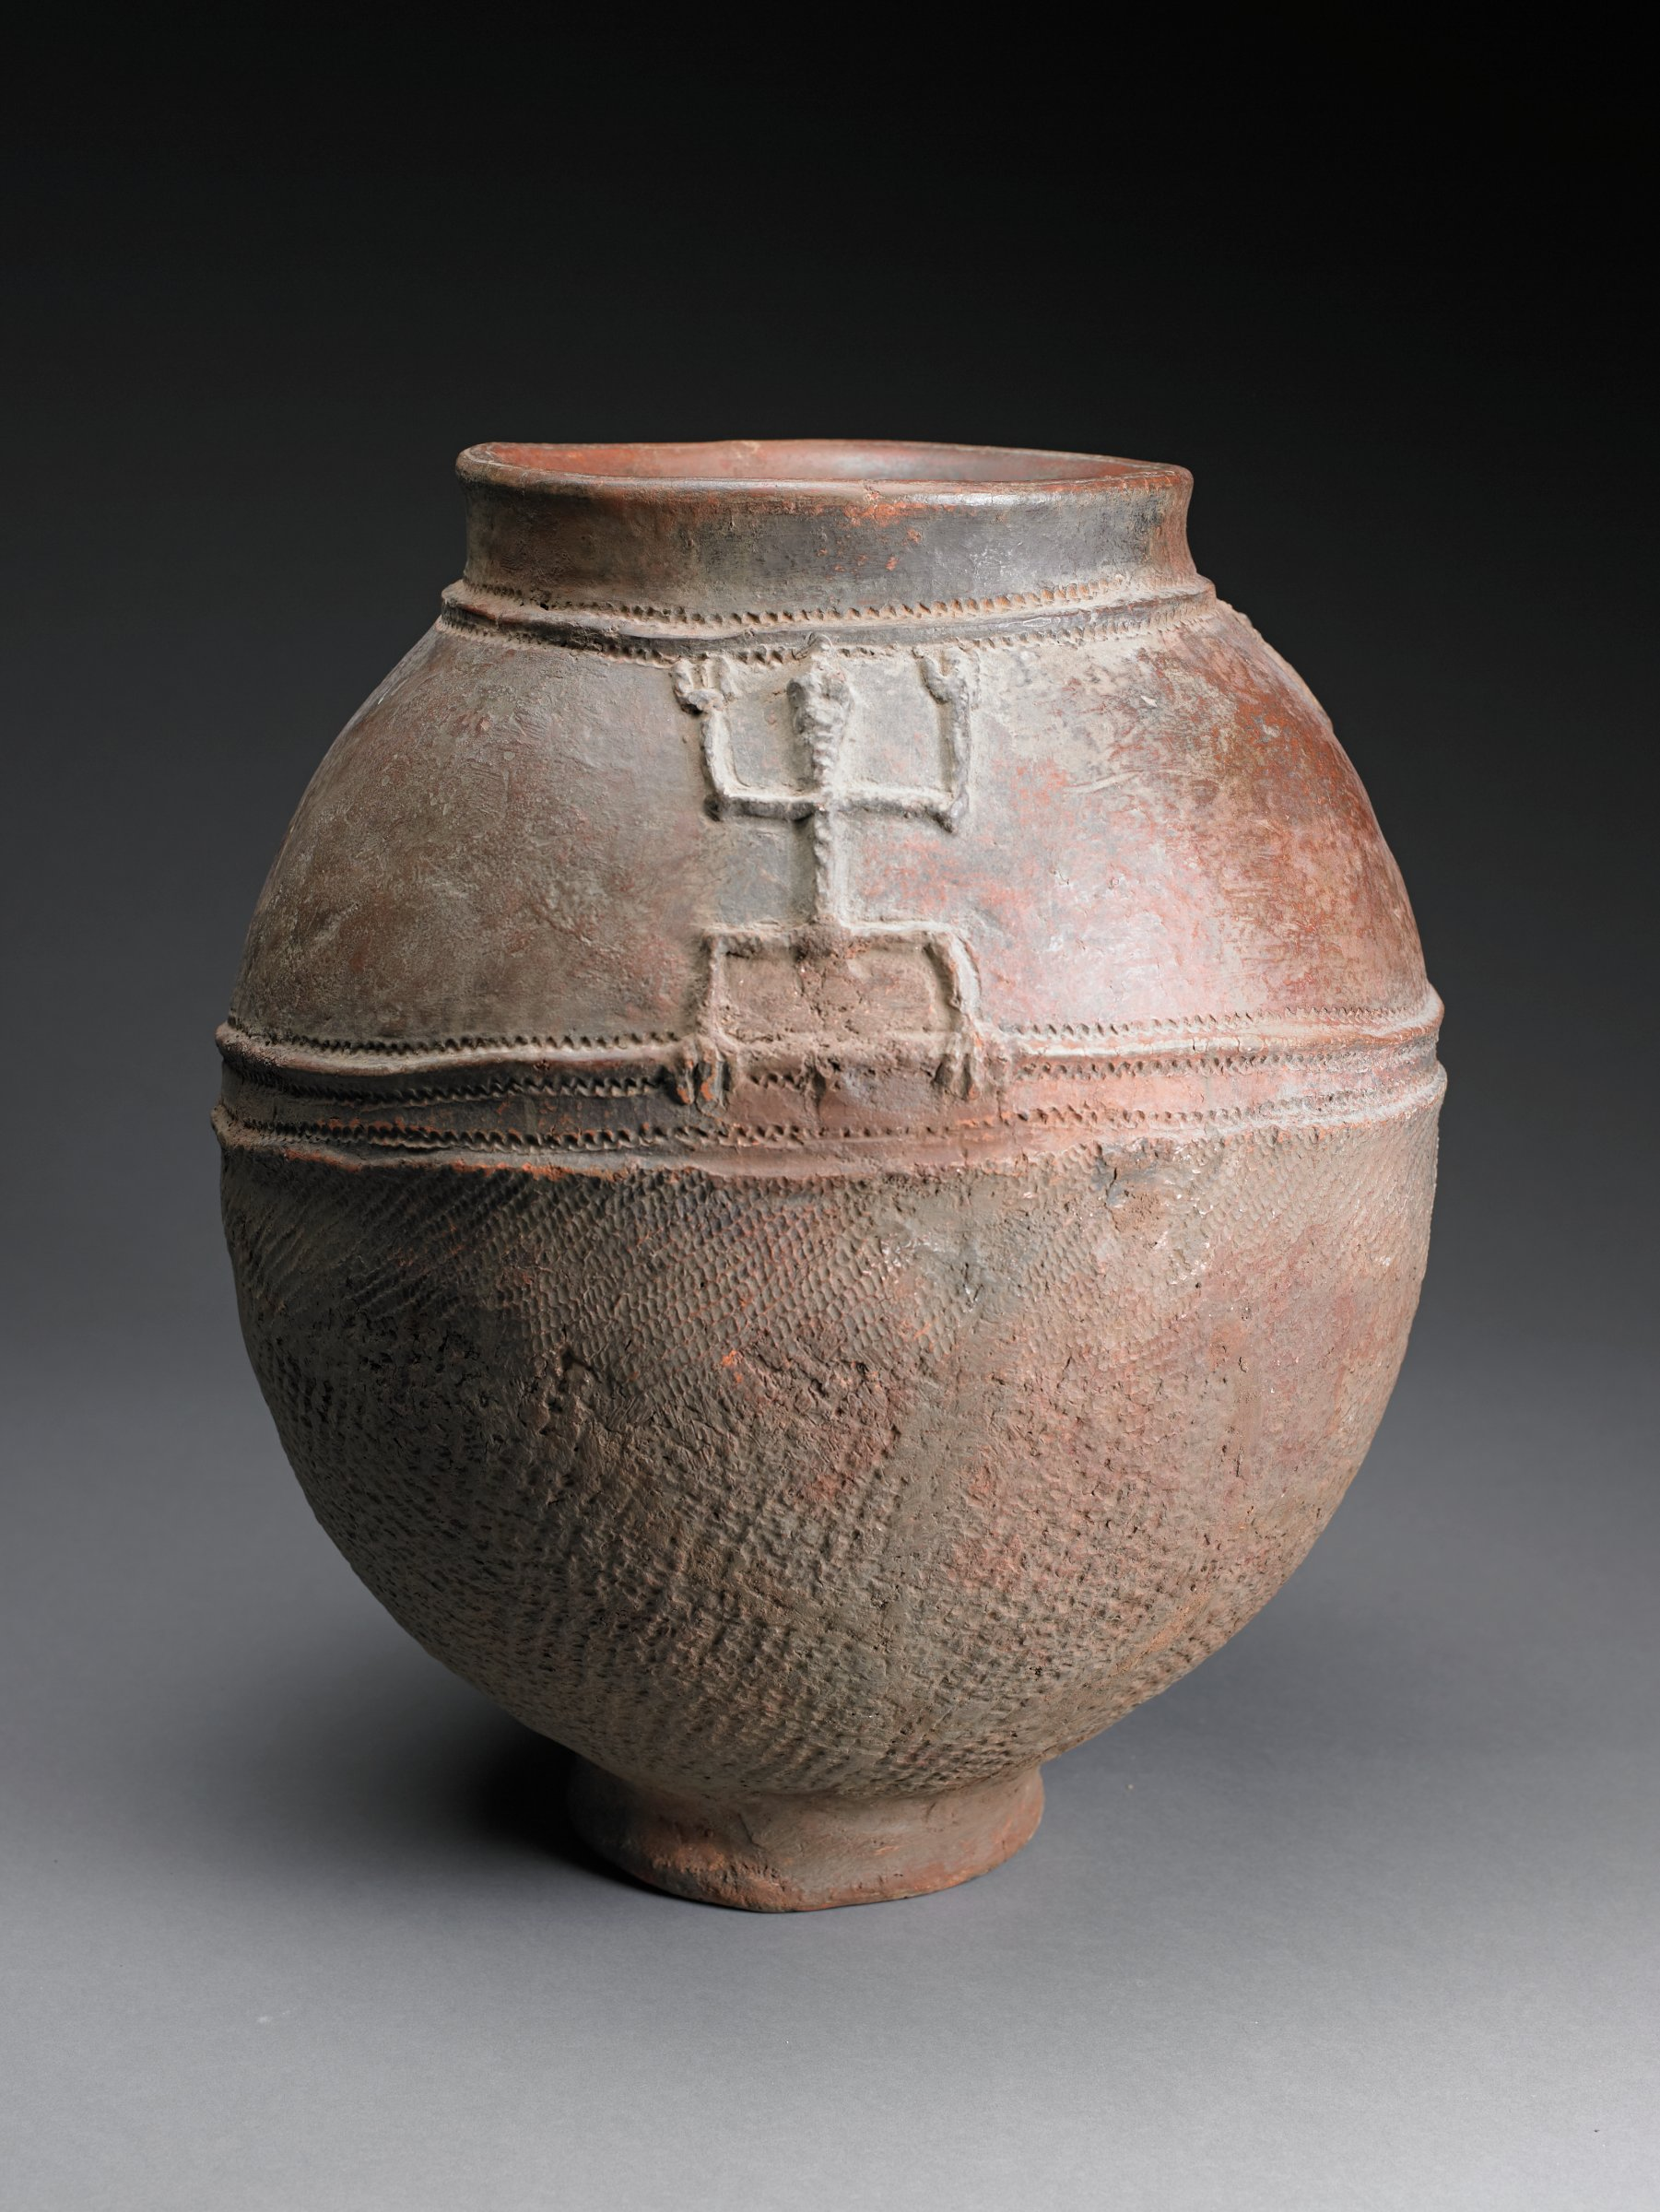 Brown ovoid jar with narrow, short foot and short rim. Shoulder has geometric lizard forms; raised ridges with zig-zag lines at at top of shoulder and mid-point of body. Bottom half of vessel has patterns from impressed cord.